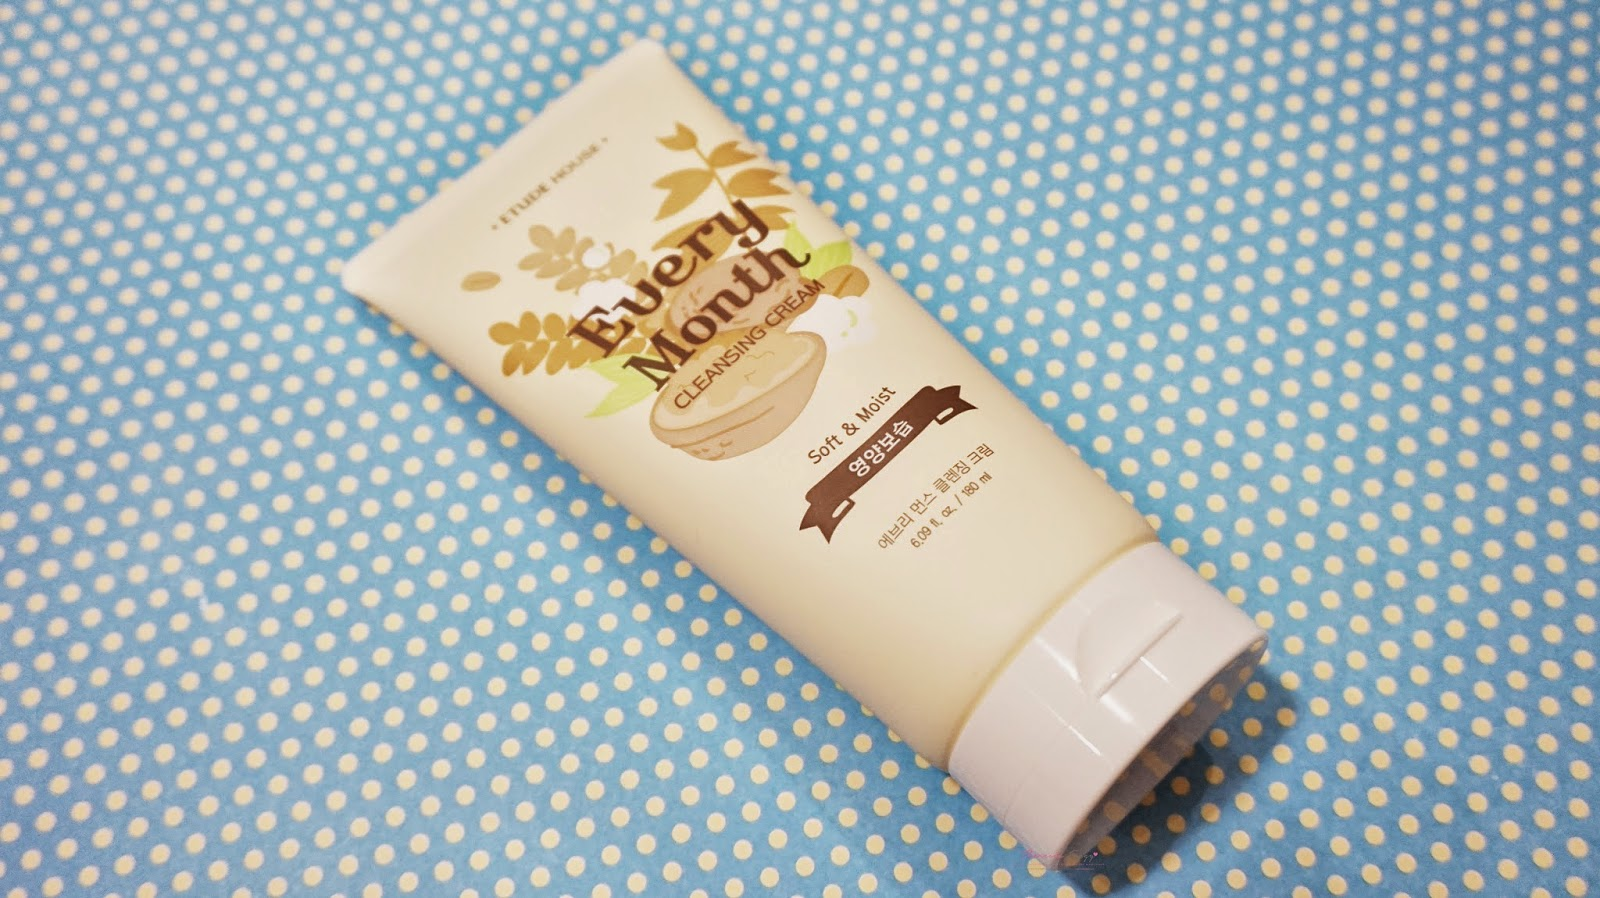 doesnt burn the skin, doesnt sting and doesnt make the skin feel tight. It is moisturizing due to the ingredients and the thick cream texture. It melts onto the skin easily and glides easily.